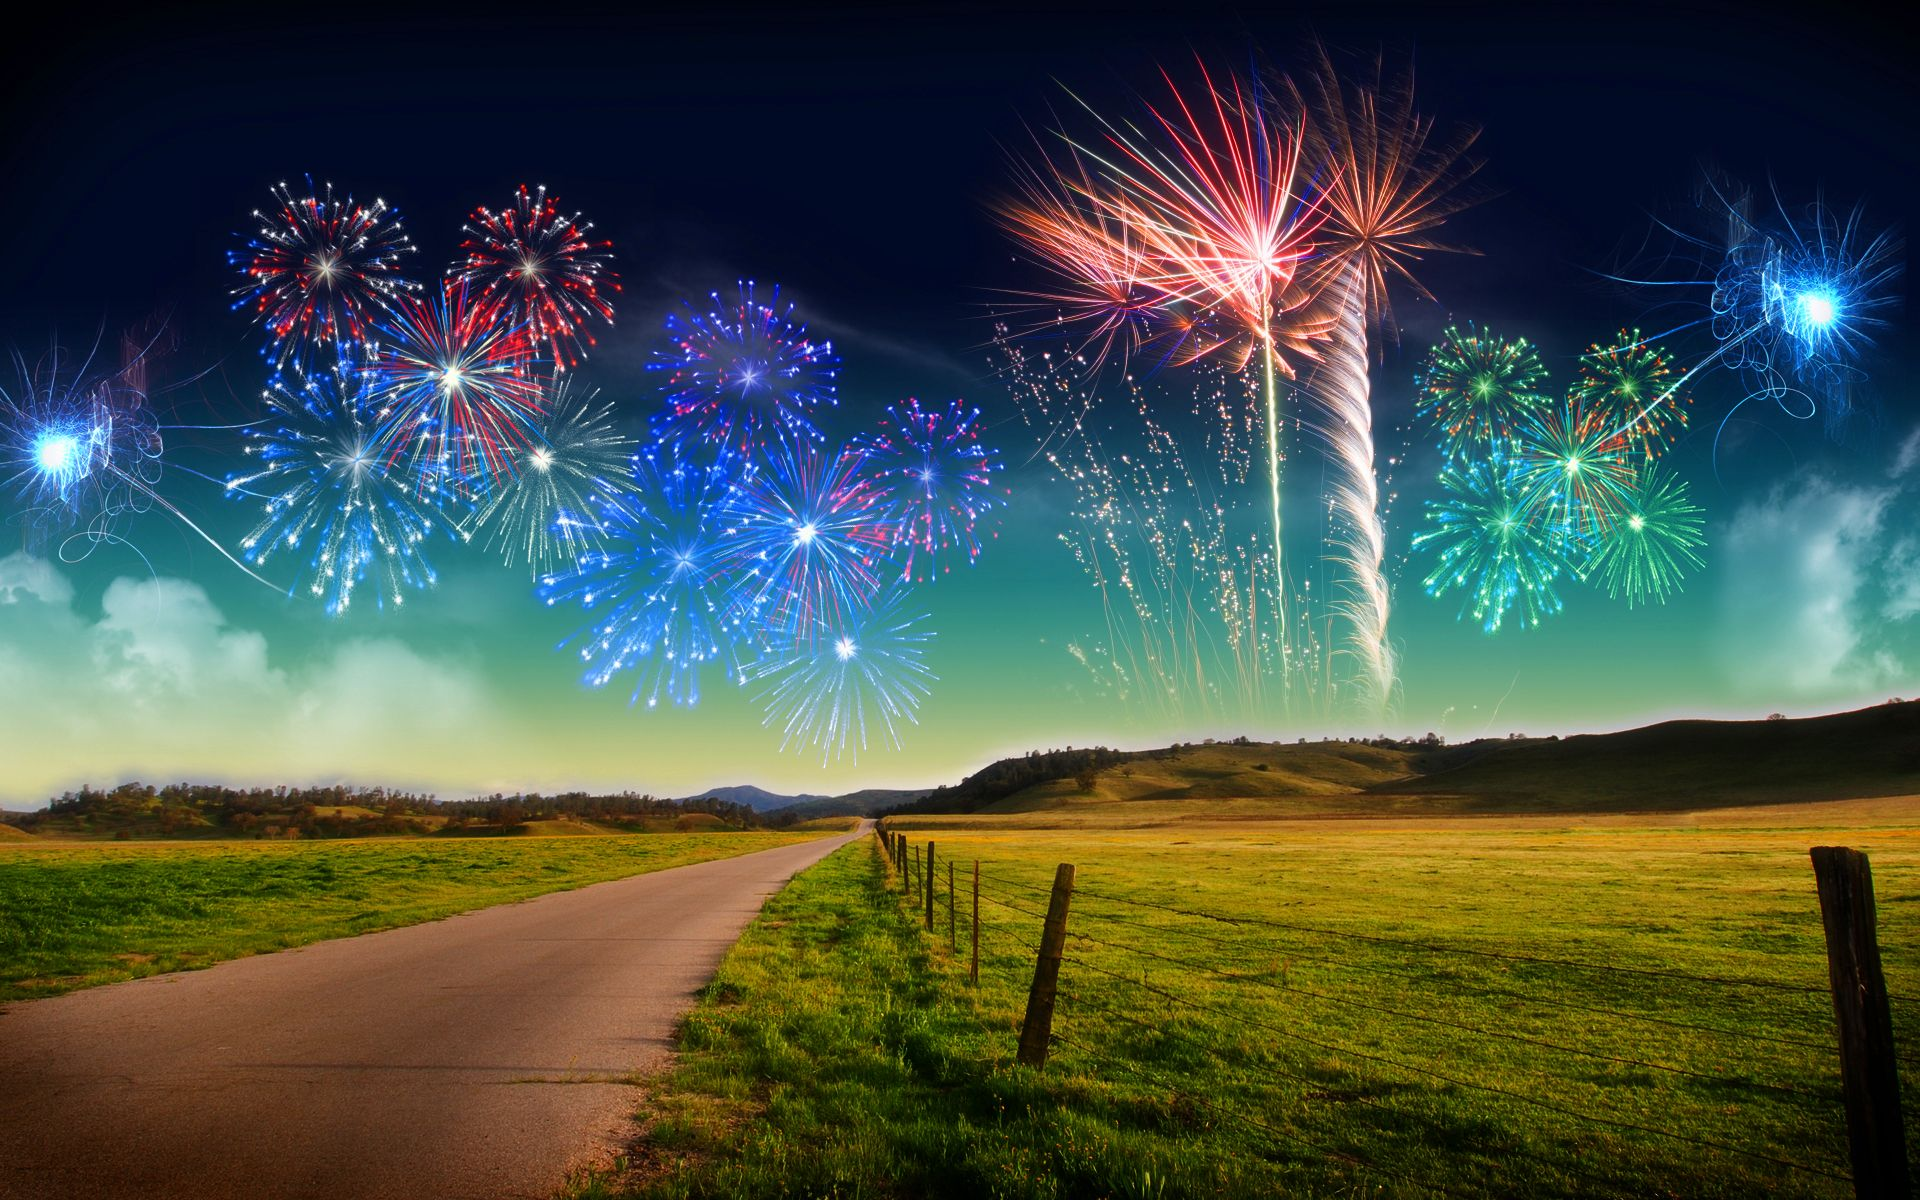 Happy New Year 2015 Best Wishes Hd Images Wallpaper New Year Fireworks Happy New Year Wallpaper Fireworks Wallpaper